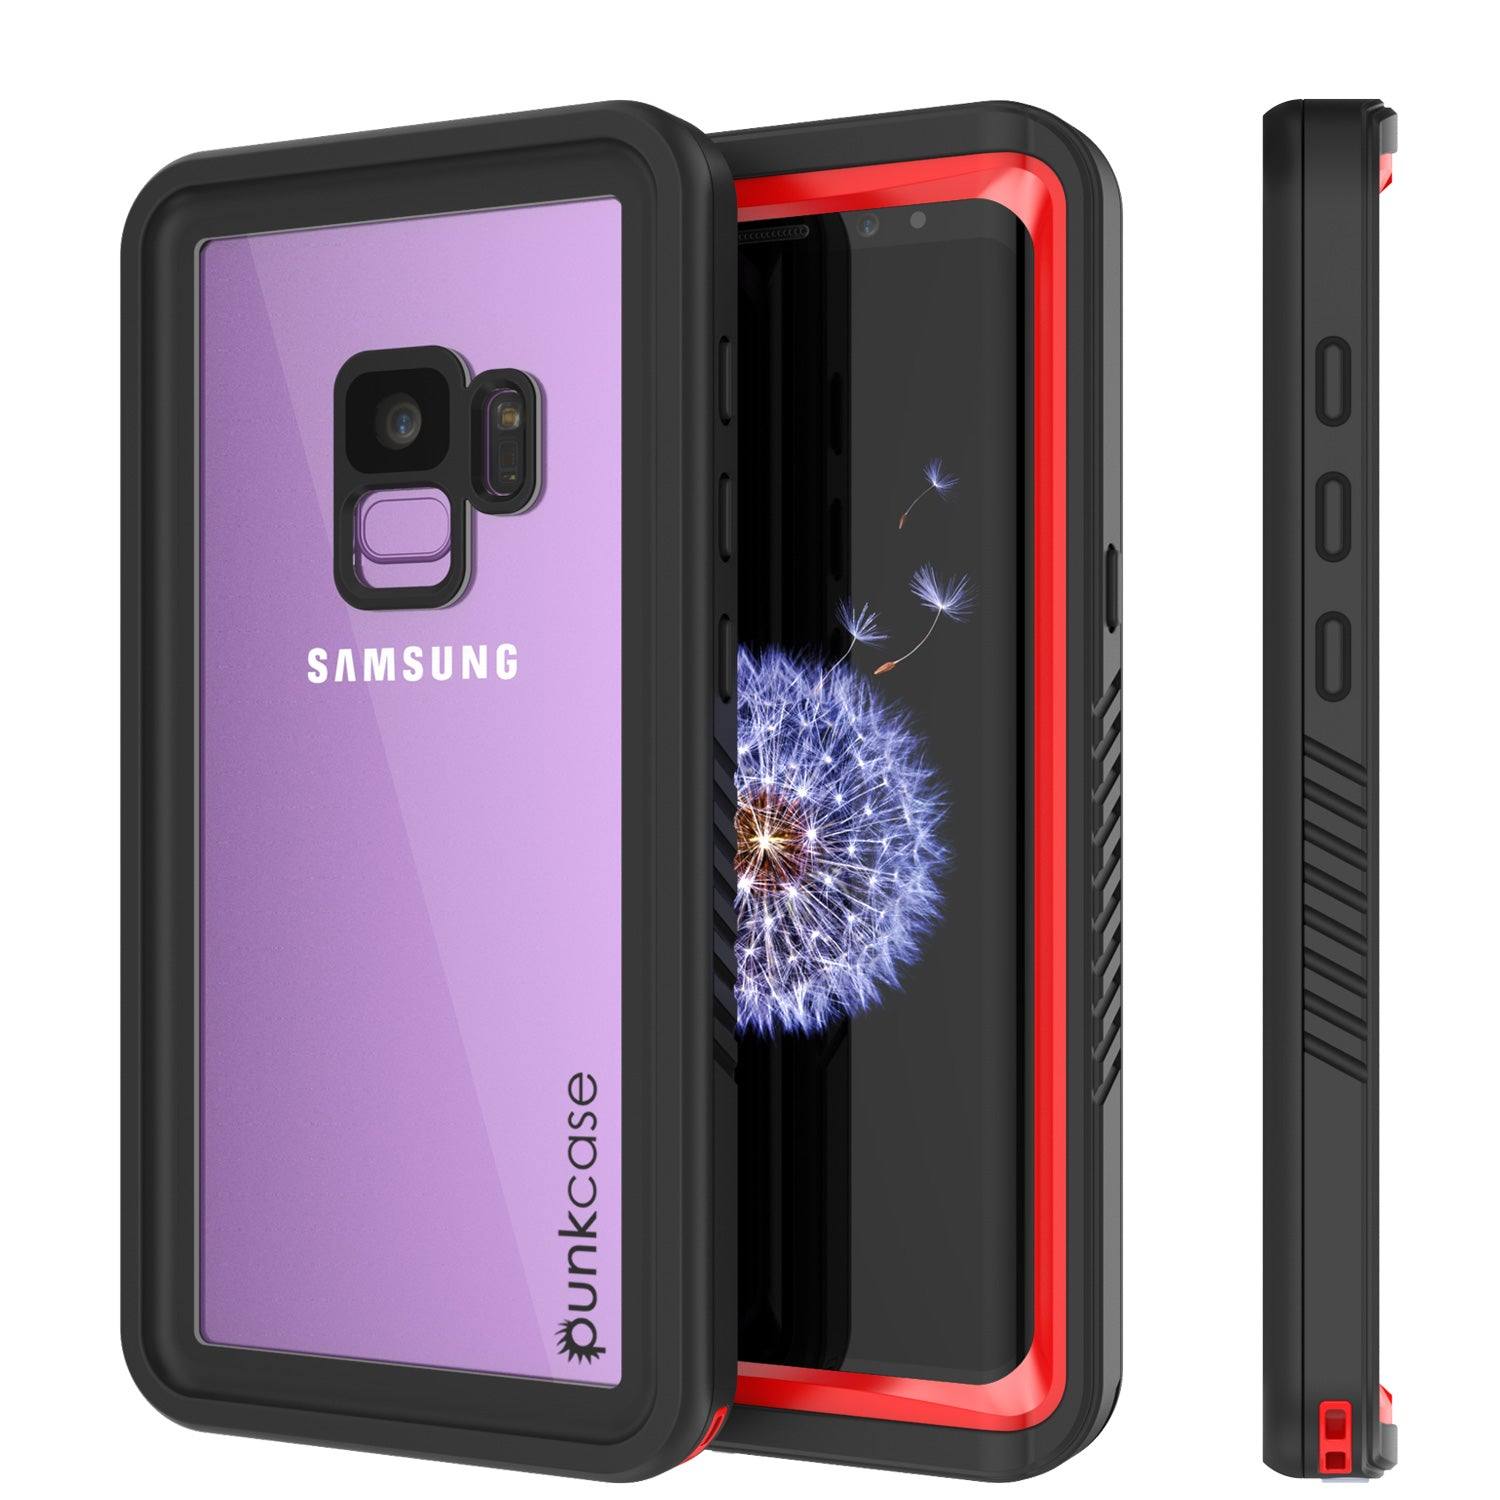 Galaxy S9 PLUS Waterproof Case, Punkcase [Extreme Series] [Slim Fit] [IP68 Certified] [Shockproof] [Snowproof] [Dirproof] Armor Cover W/ Built In Screen Protector for Samsung Galaxy S9+ [Red]